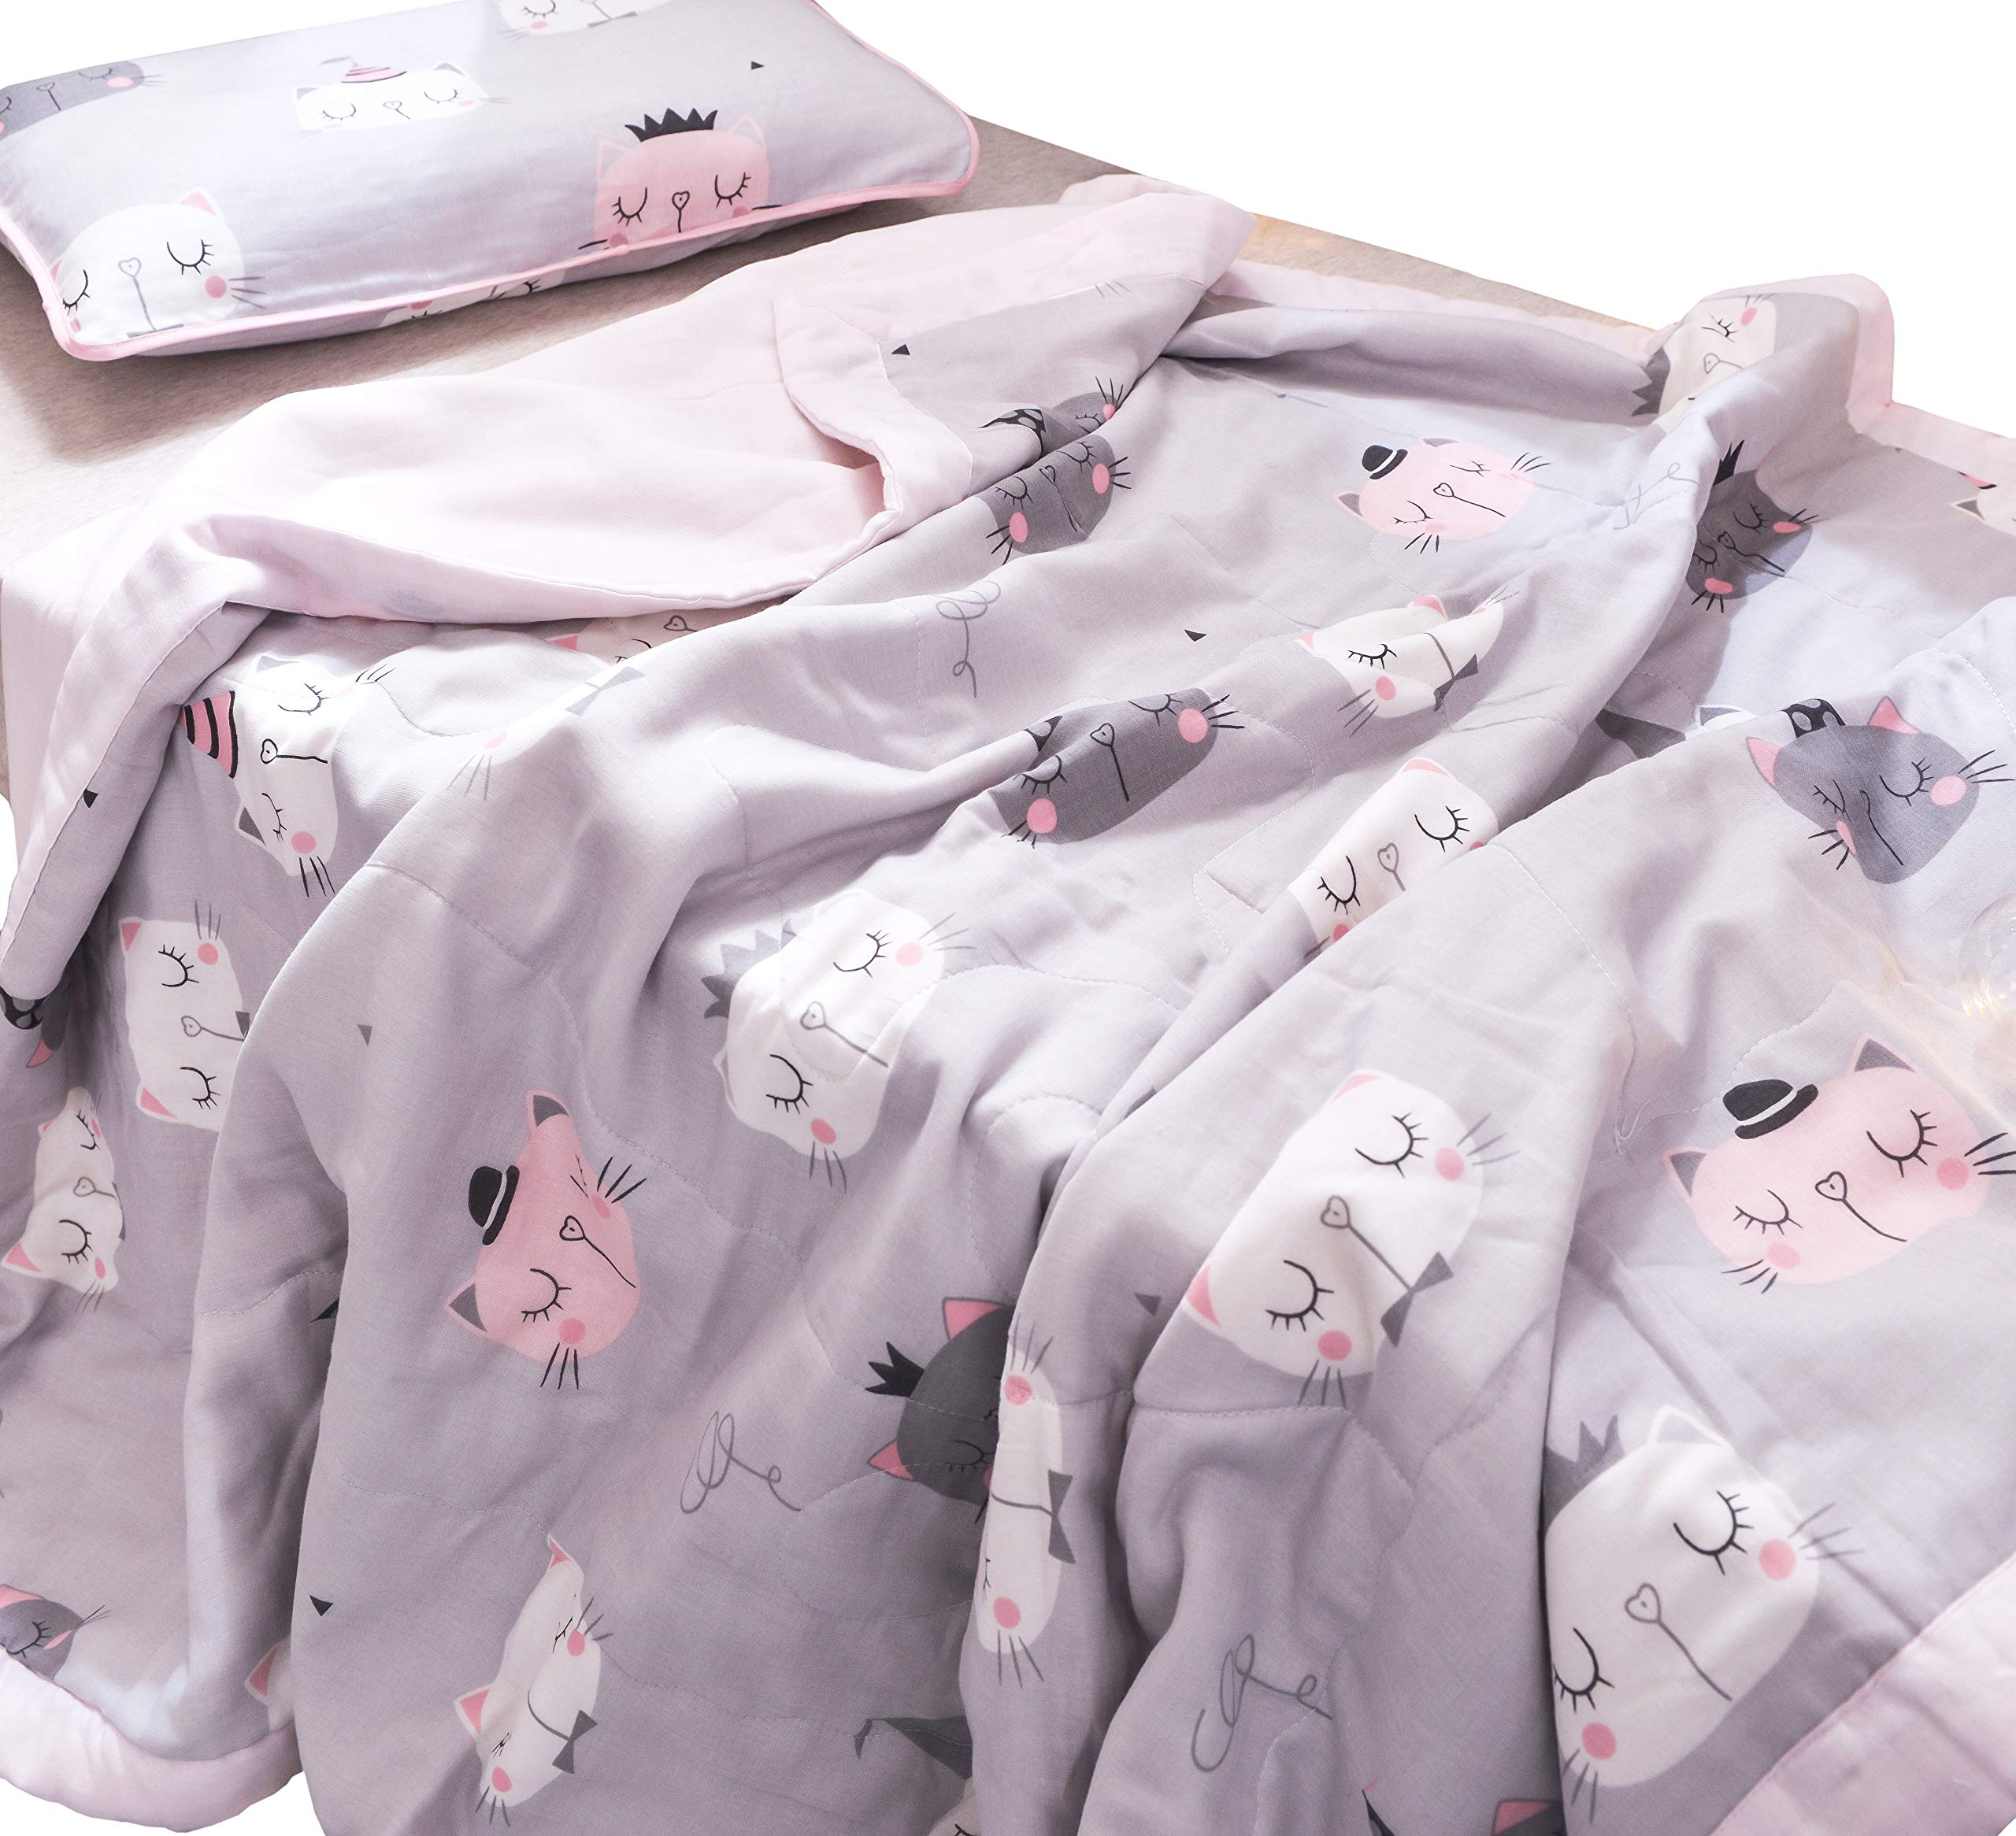 J-pinno Boys & Girls Cute Cats Kitty Muslin Quilted Comforter Bedding Coverlet, 100% Long Staple Cotton, Throw Blanket Twin/Full for Kid's Bedroom Decoration Gift (Twin 59'' X 78'', cats2)